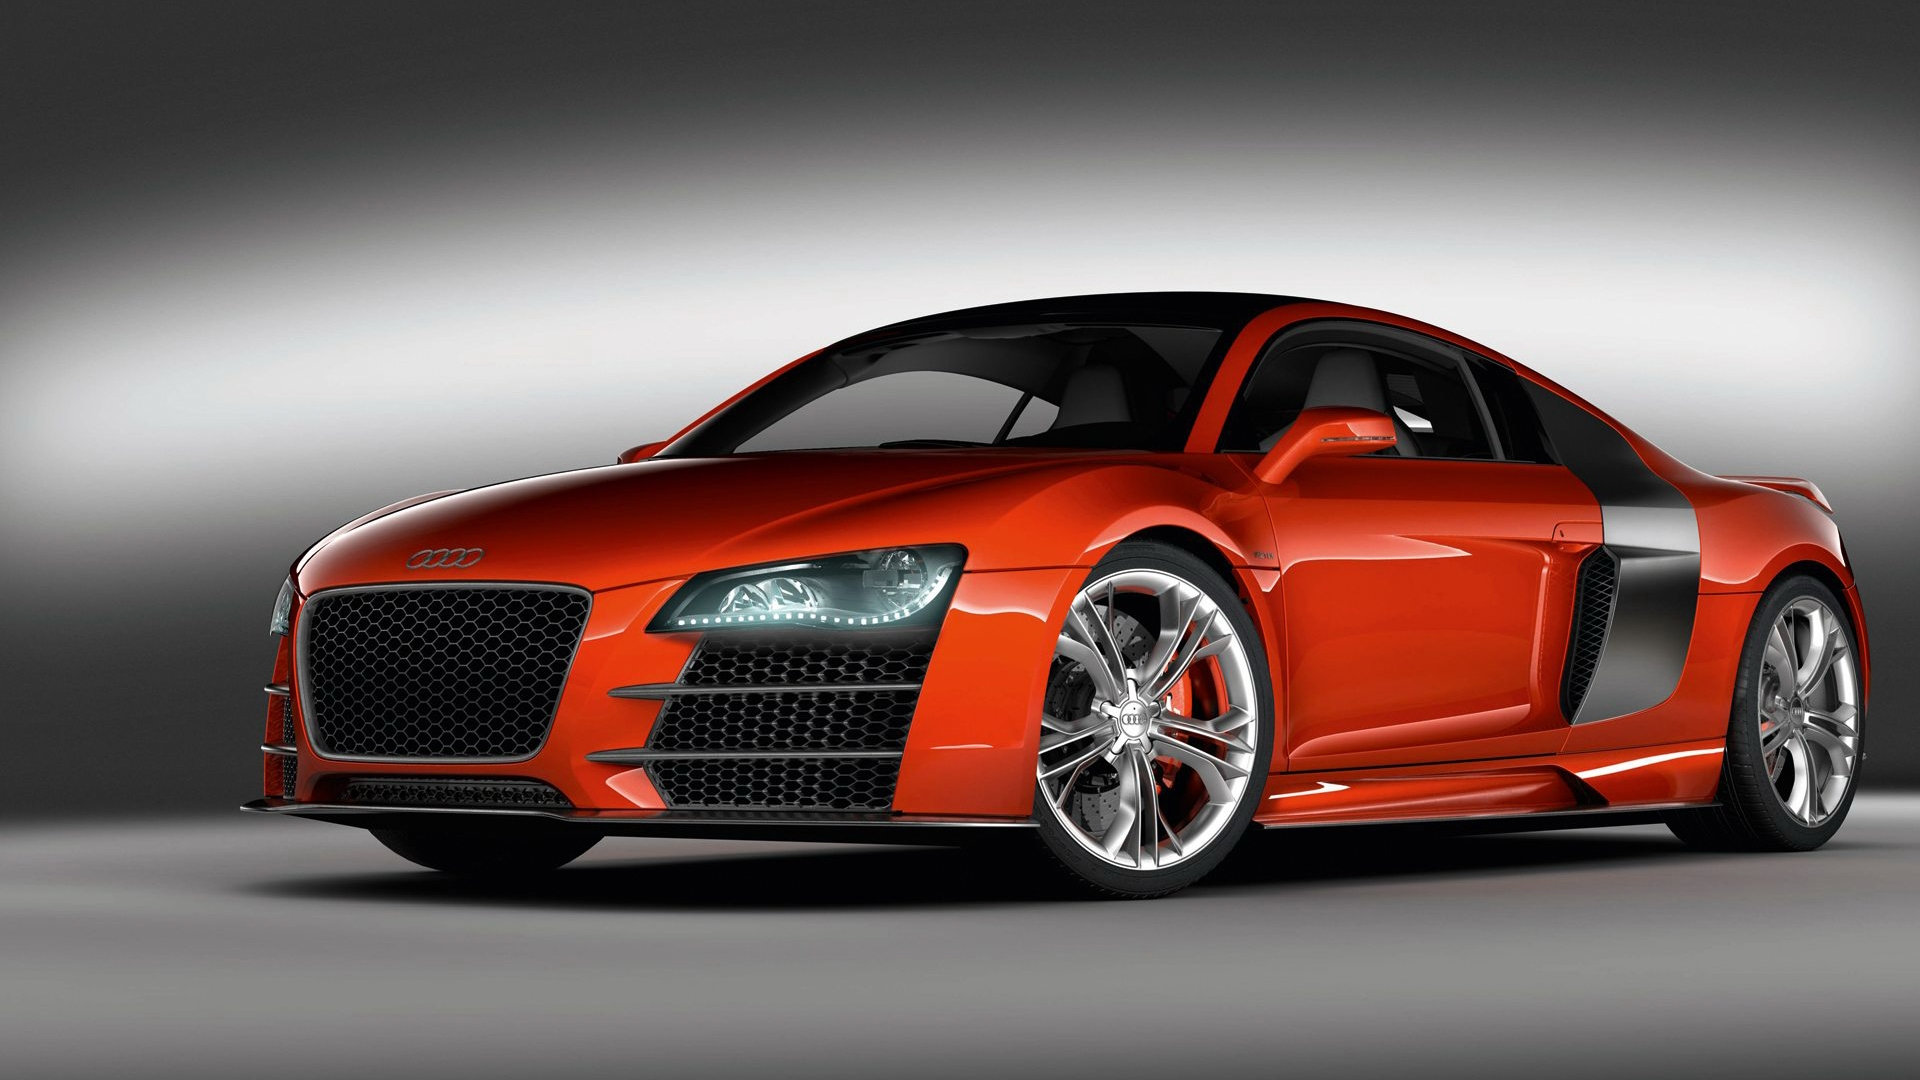 audi r8 desktop wallpaper 49362